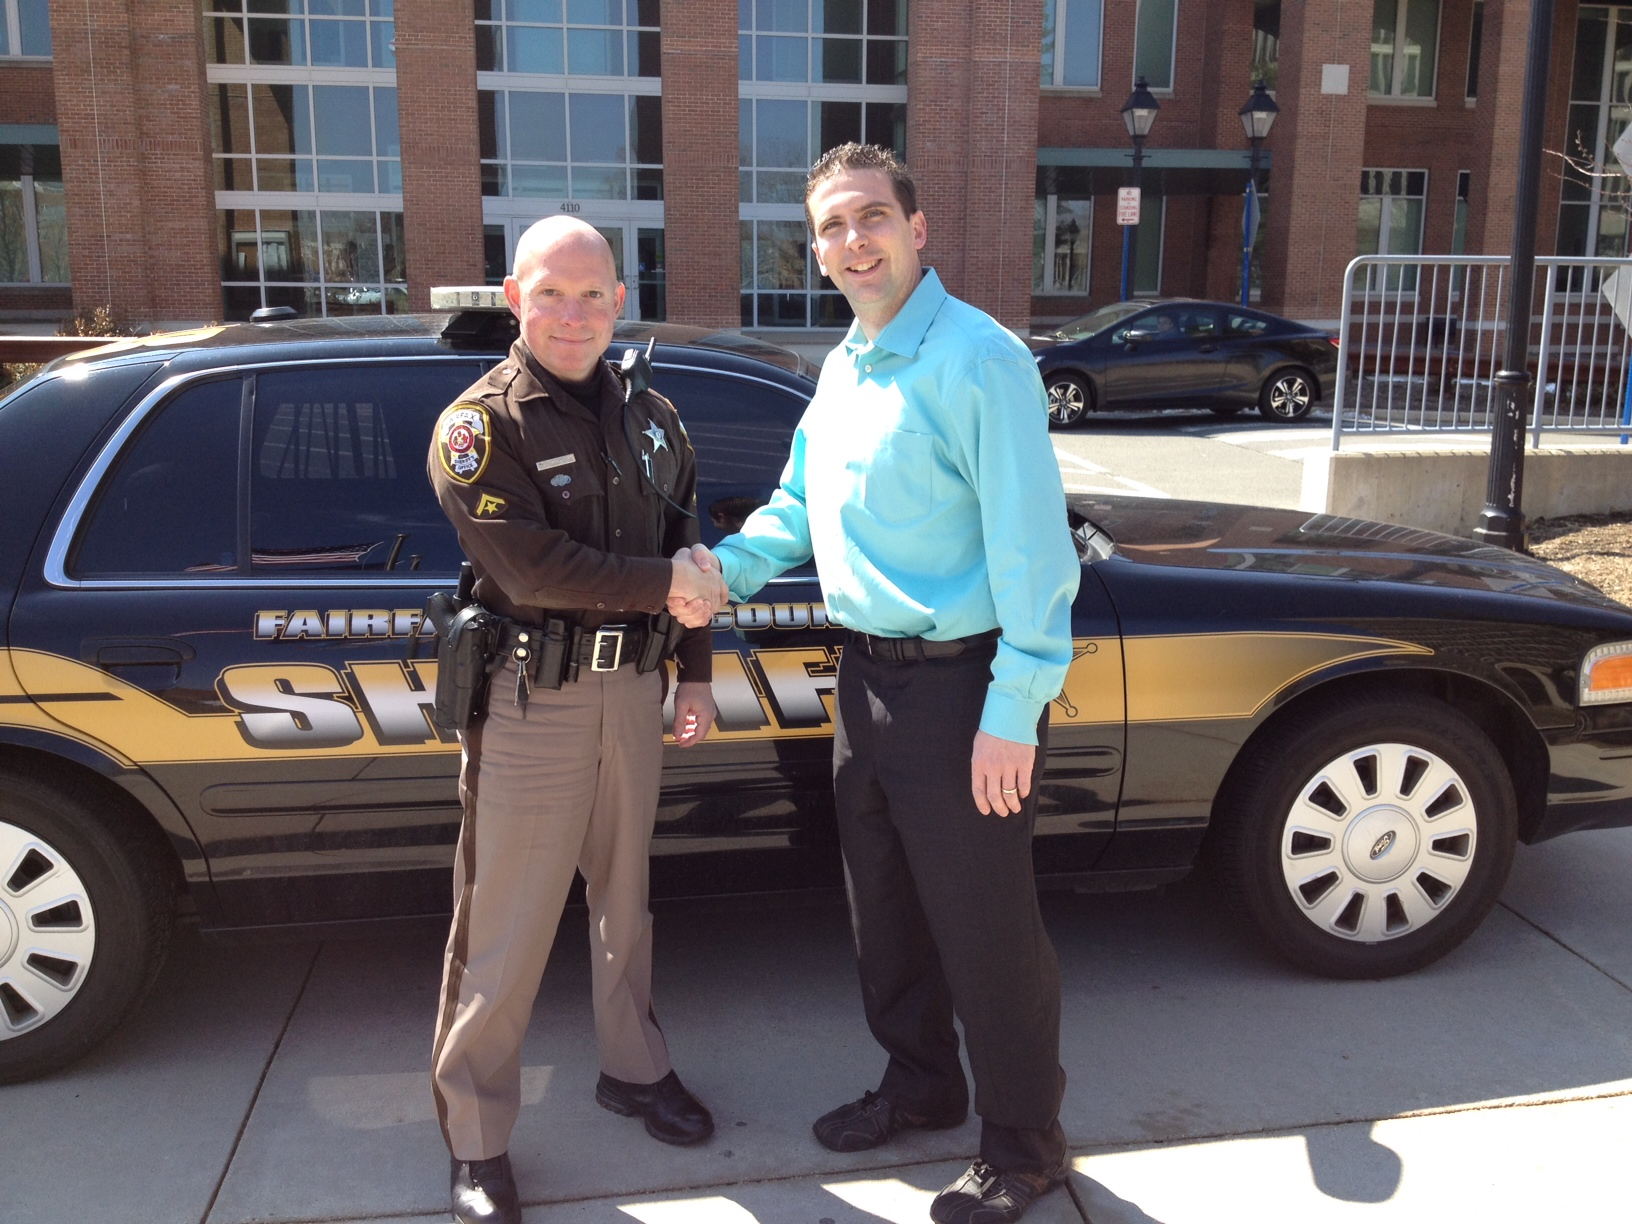 Jon Stehle with Master Deputy Sheriff Thomas